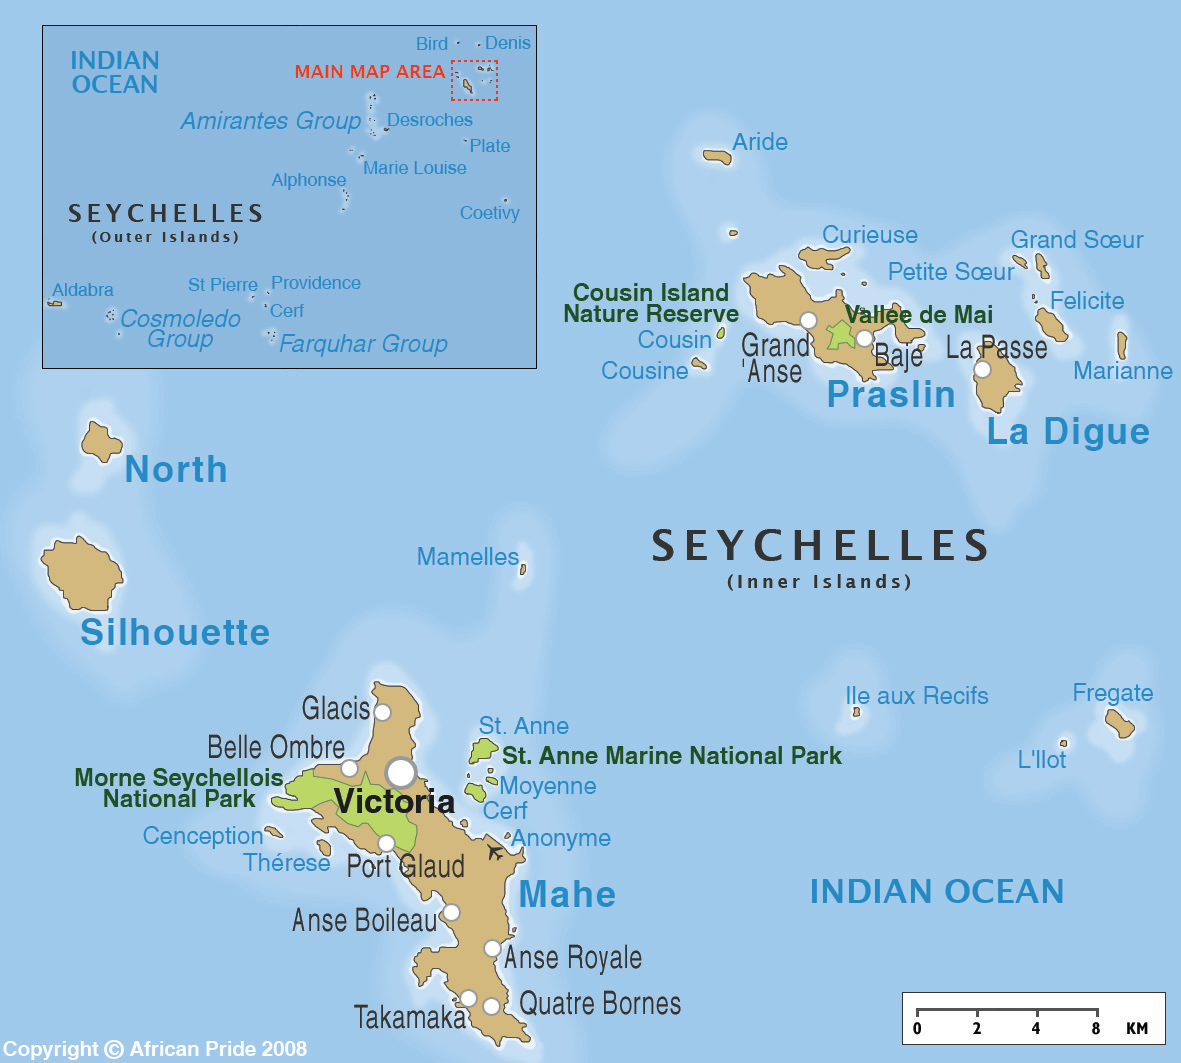 Sponsored Video - Earn 10,000 Euros to explore and map Seychelles ...